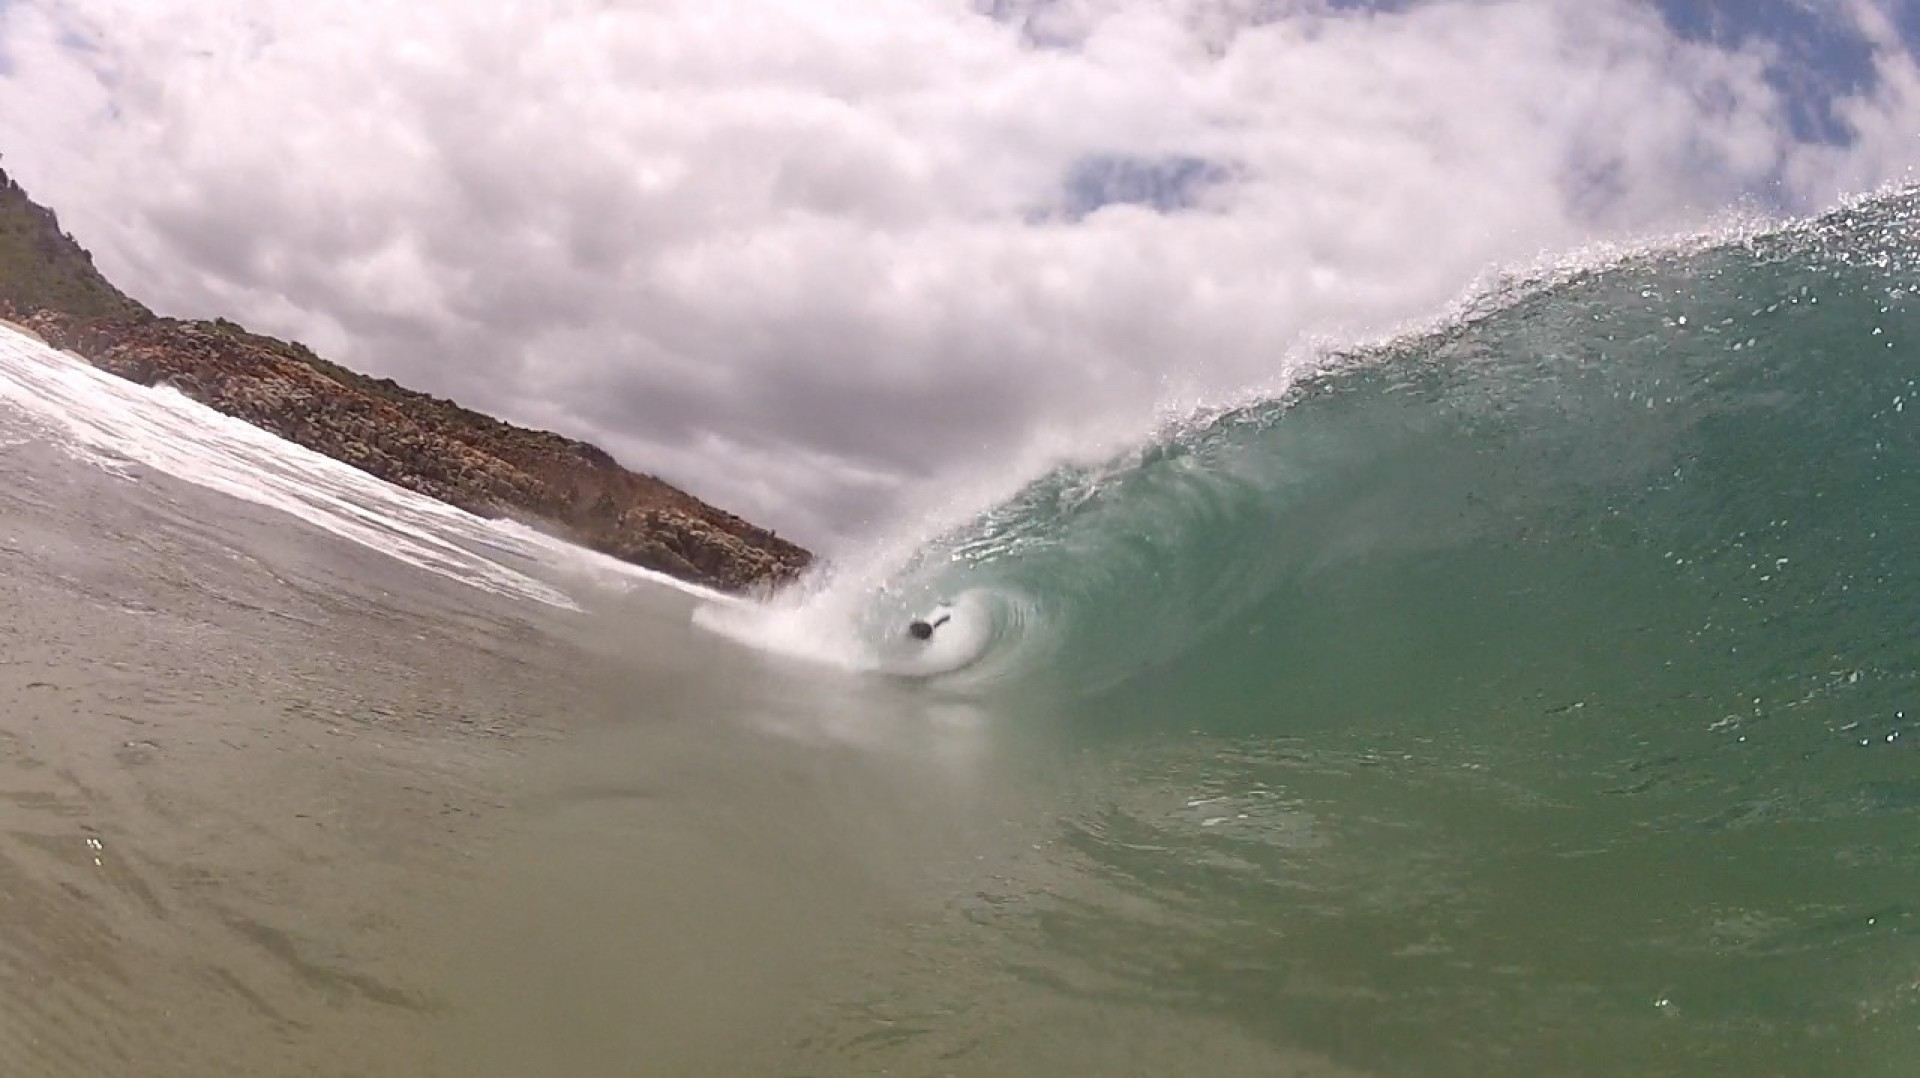 WesternCapeSurf's photo of The Wedge